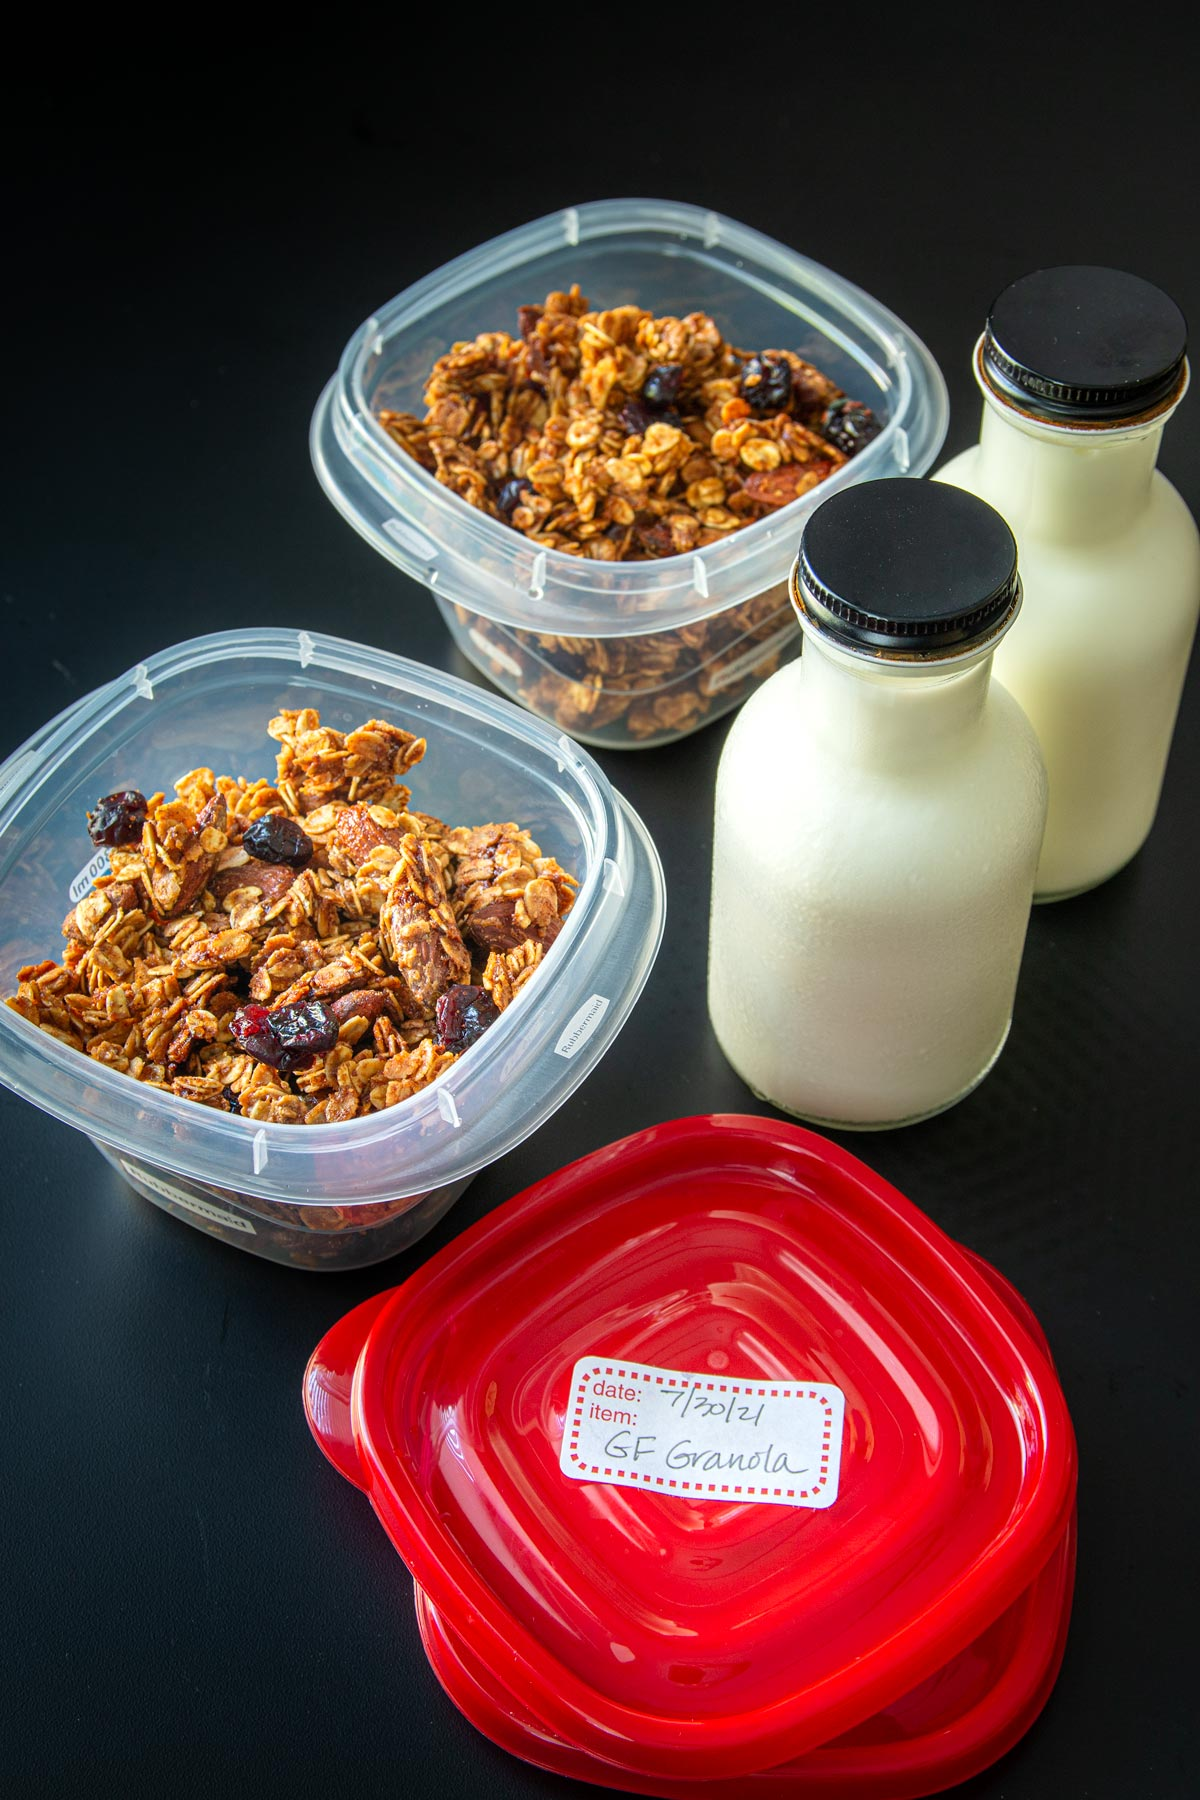 granola in meal prep boxes next to bottles of milk for packing.